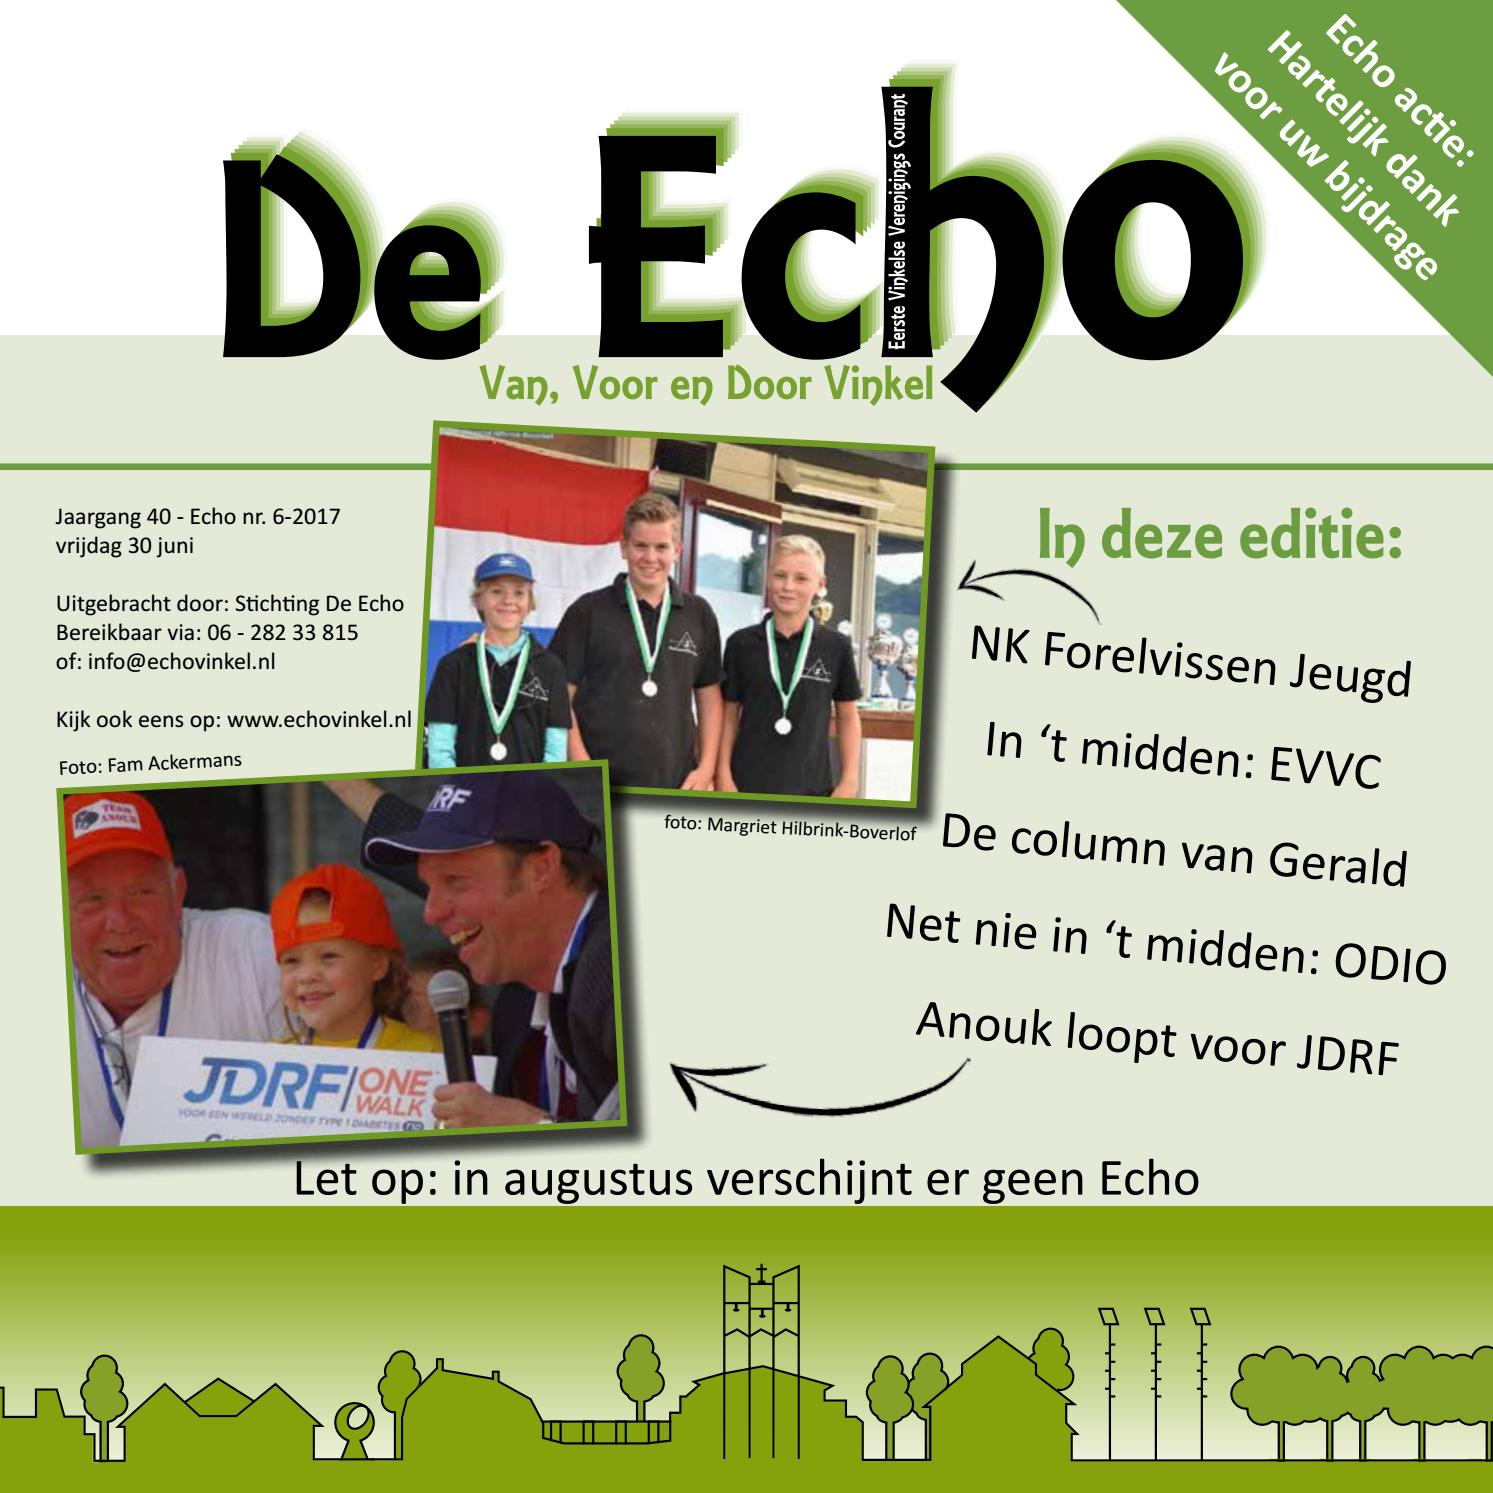 De Echo - juni 2017 by Echo vinkel - issuu